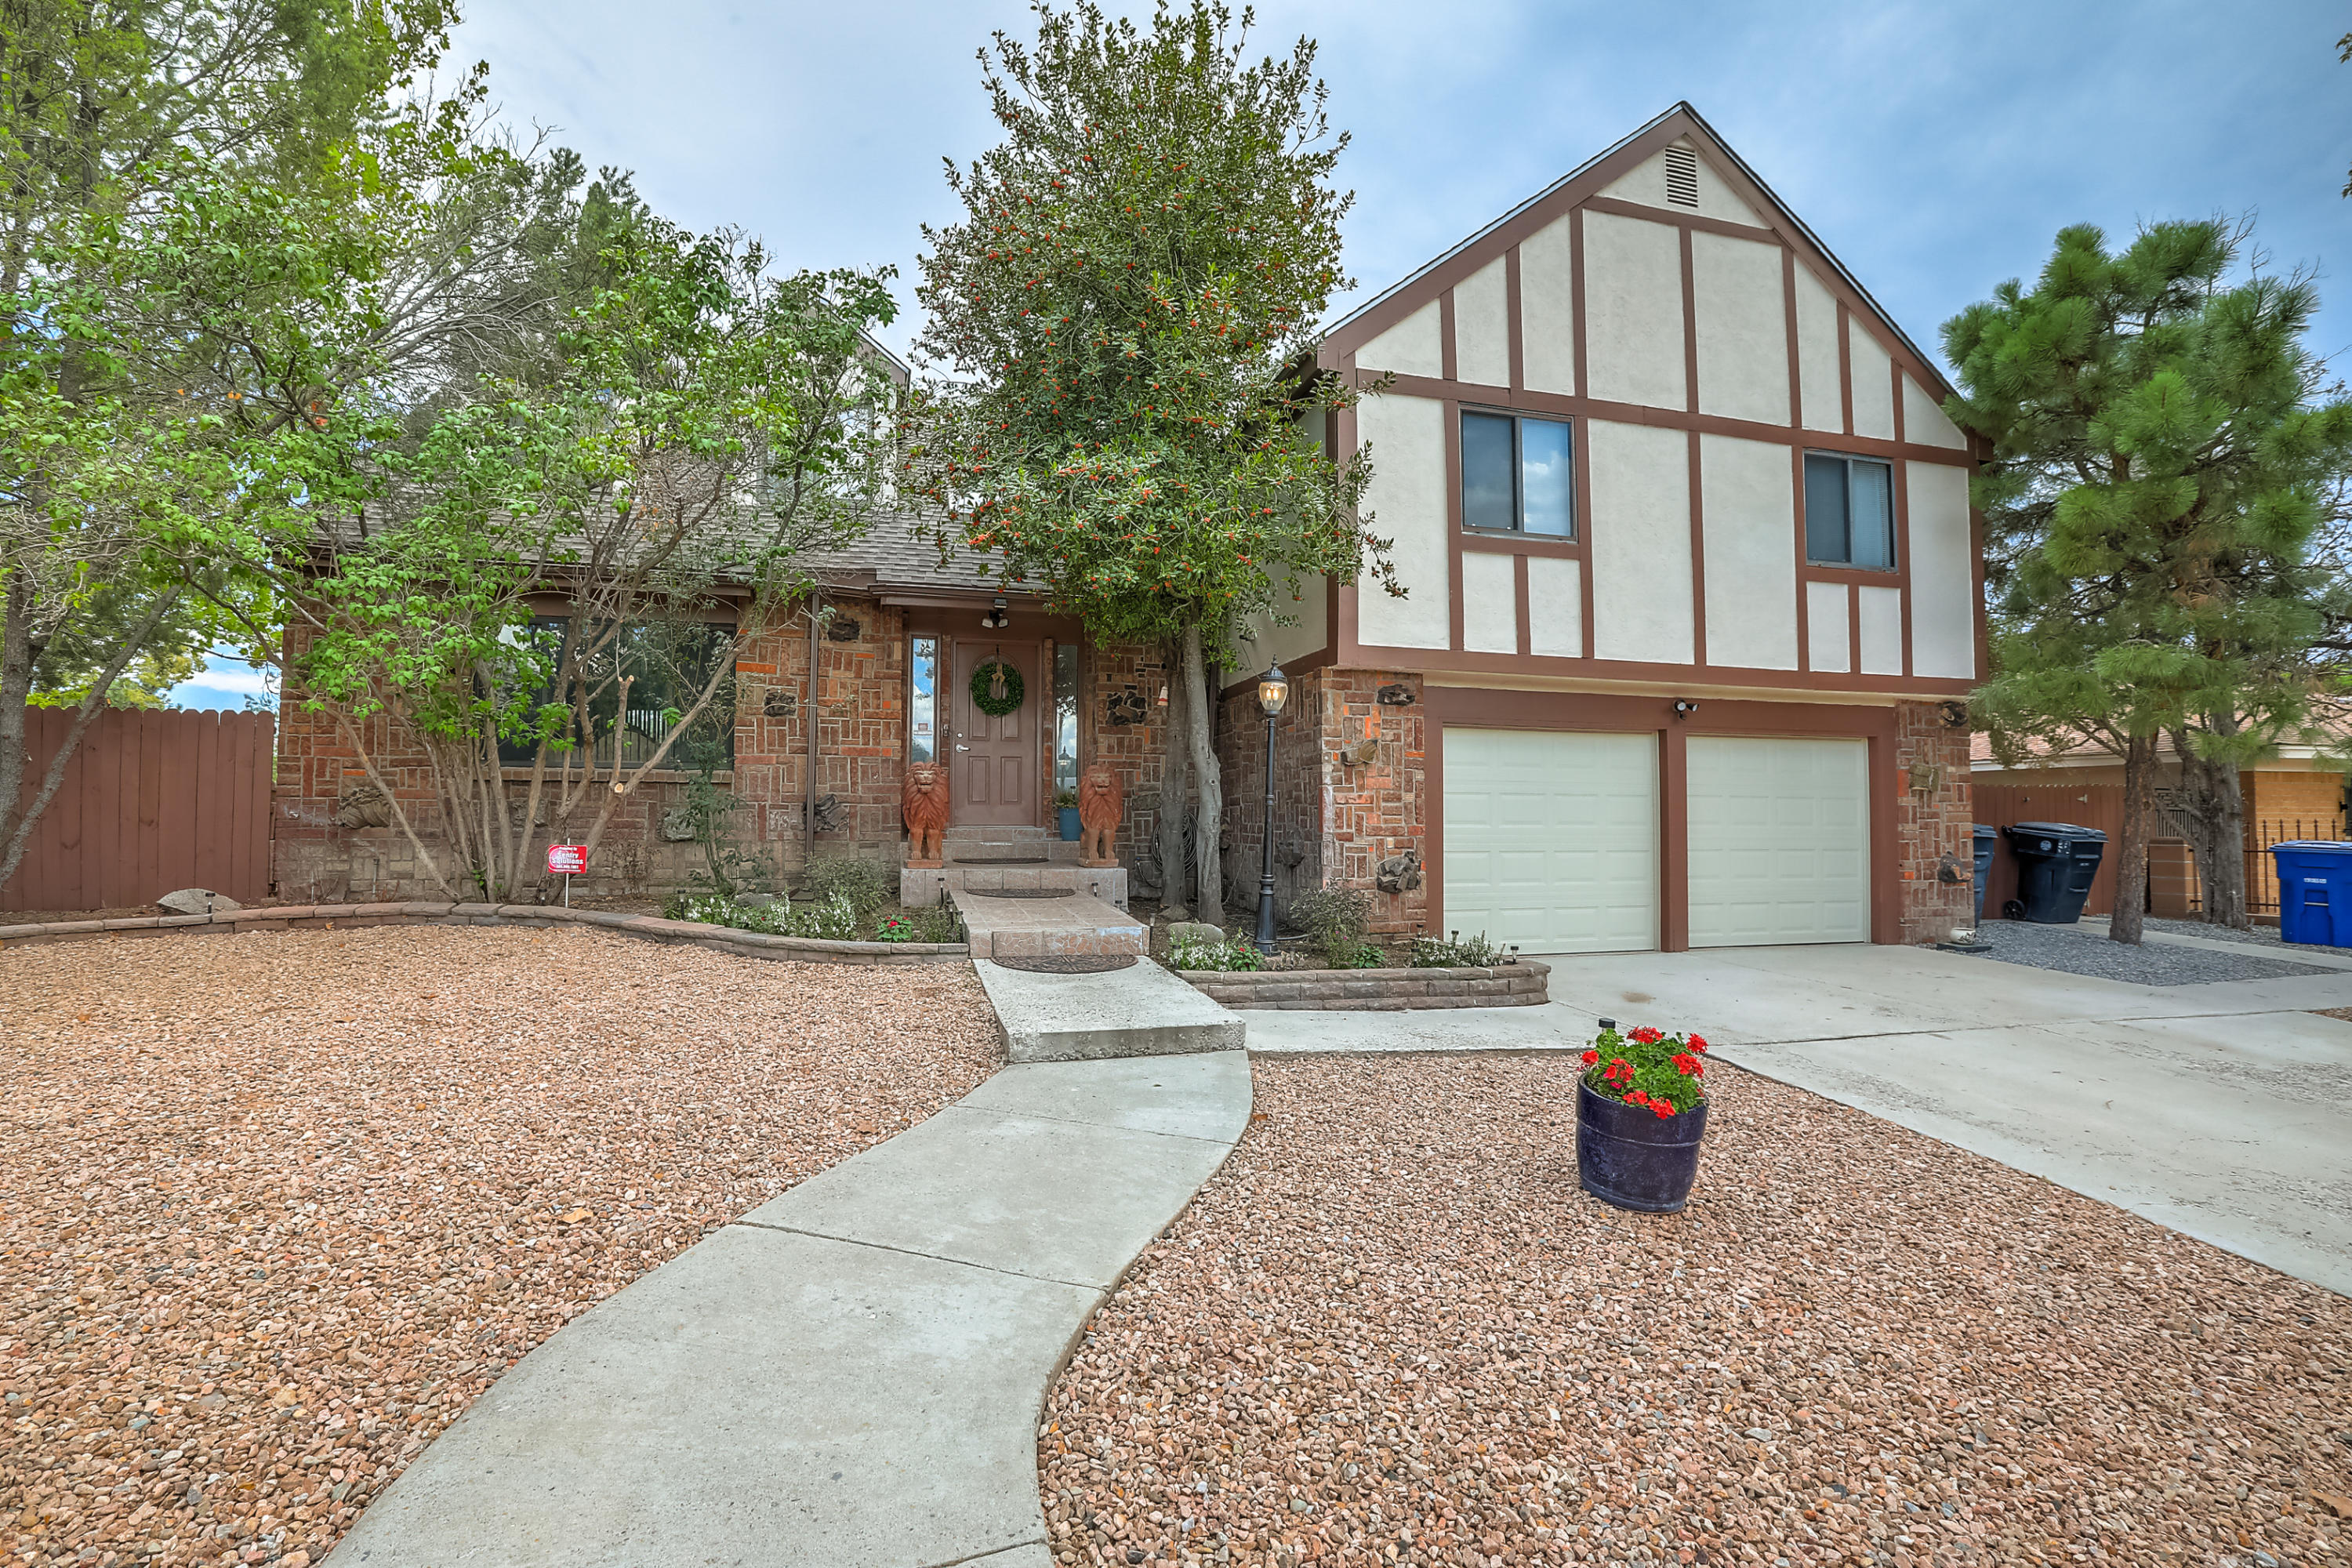 One of a kind spectacular NorthEast heights treasure awaits its new owners! Corner lot with new landscaping in front! Ample space for the growing family! Loads of storage in this home and Morgan shed out back! Remodeled kitchen with double ovens, microwave, dishwasher, solid surface counters, custom Hickory cabinets,designer back splash and good sized mobile island! Ceramic and porcelain tile floors except for carpeted bedrooms. Composite deck off the Master BR. Updated bathrooms! Cozy Family Room with wood burning Fireplace!Formal Living/ Dining space!Breakfast nook! REFRIGERATED AIR! Beautiful chandeliers! Hot tub stays with the home! Newer 6 panel interior doors throughout.Walk to popular schools and shopping! This home has been lovingly maintained! Come see this special property today!